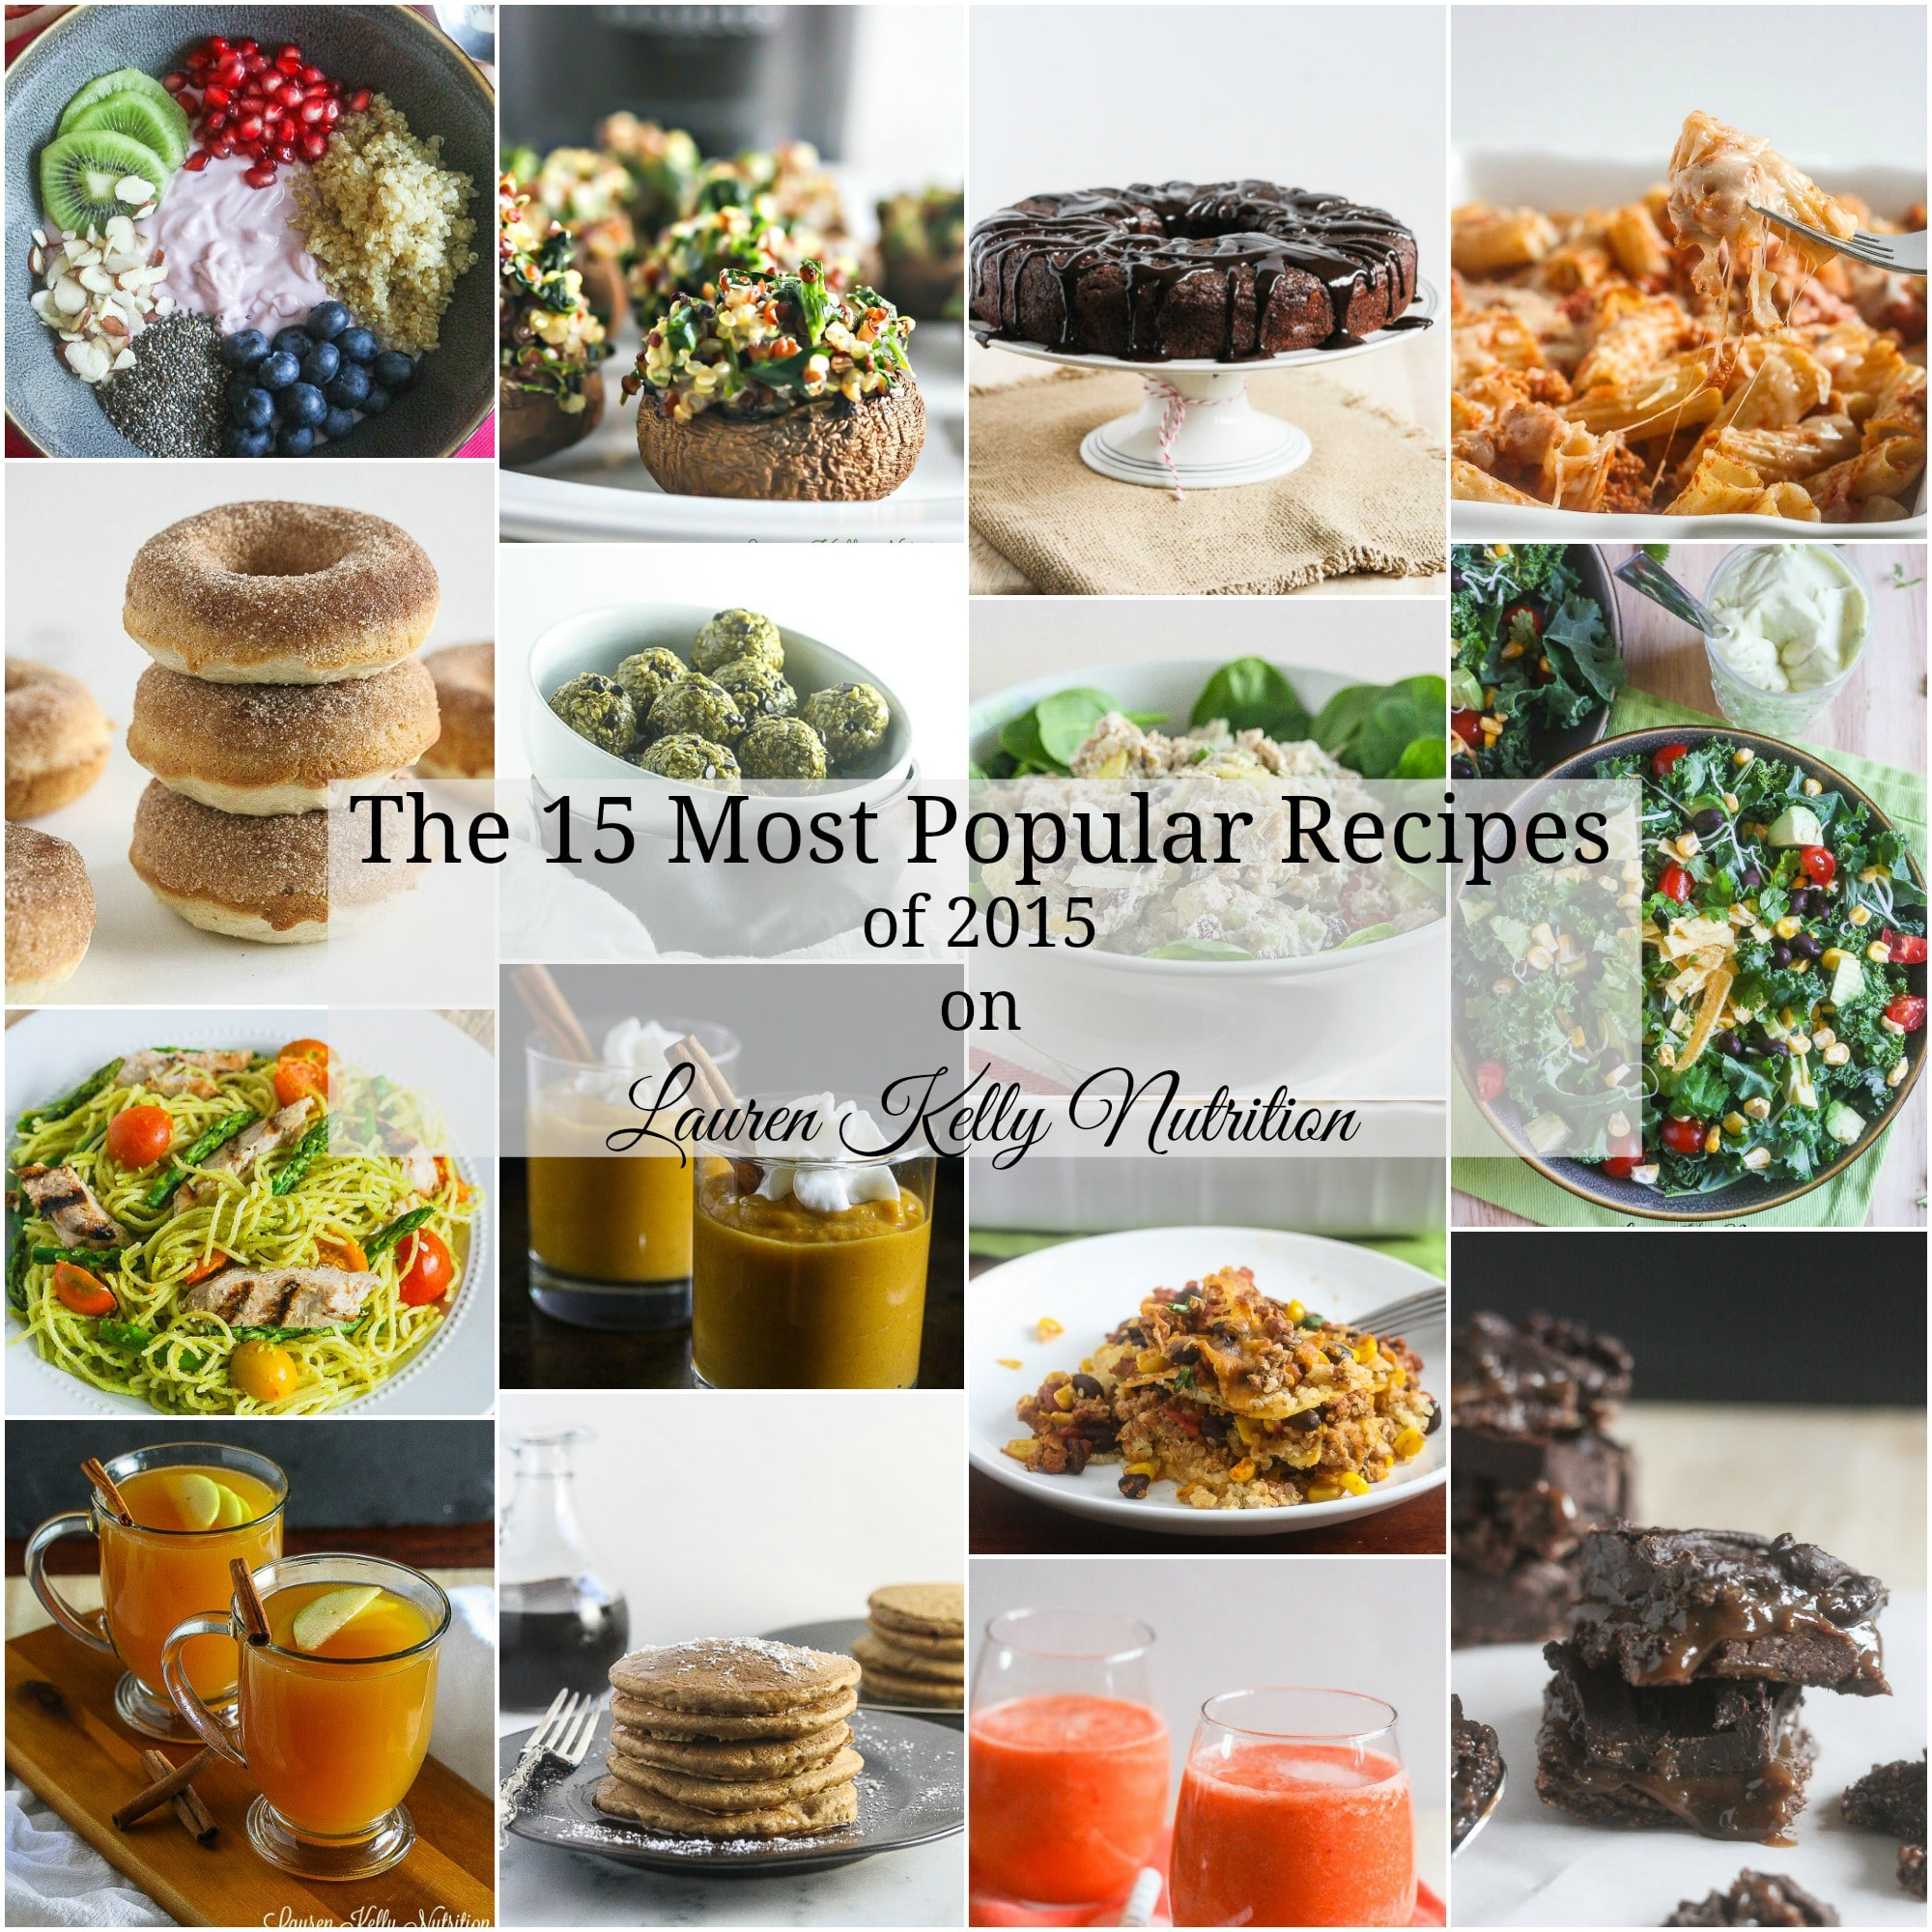 The 15 Most Popular Recipes from Lauren Kelly Nutrition in 2015